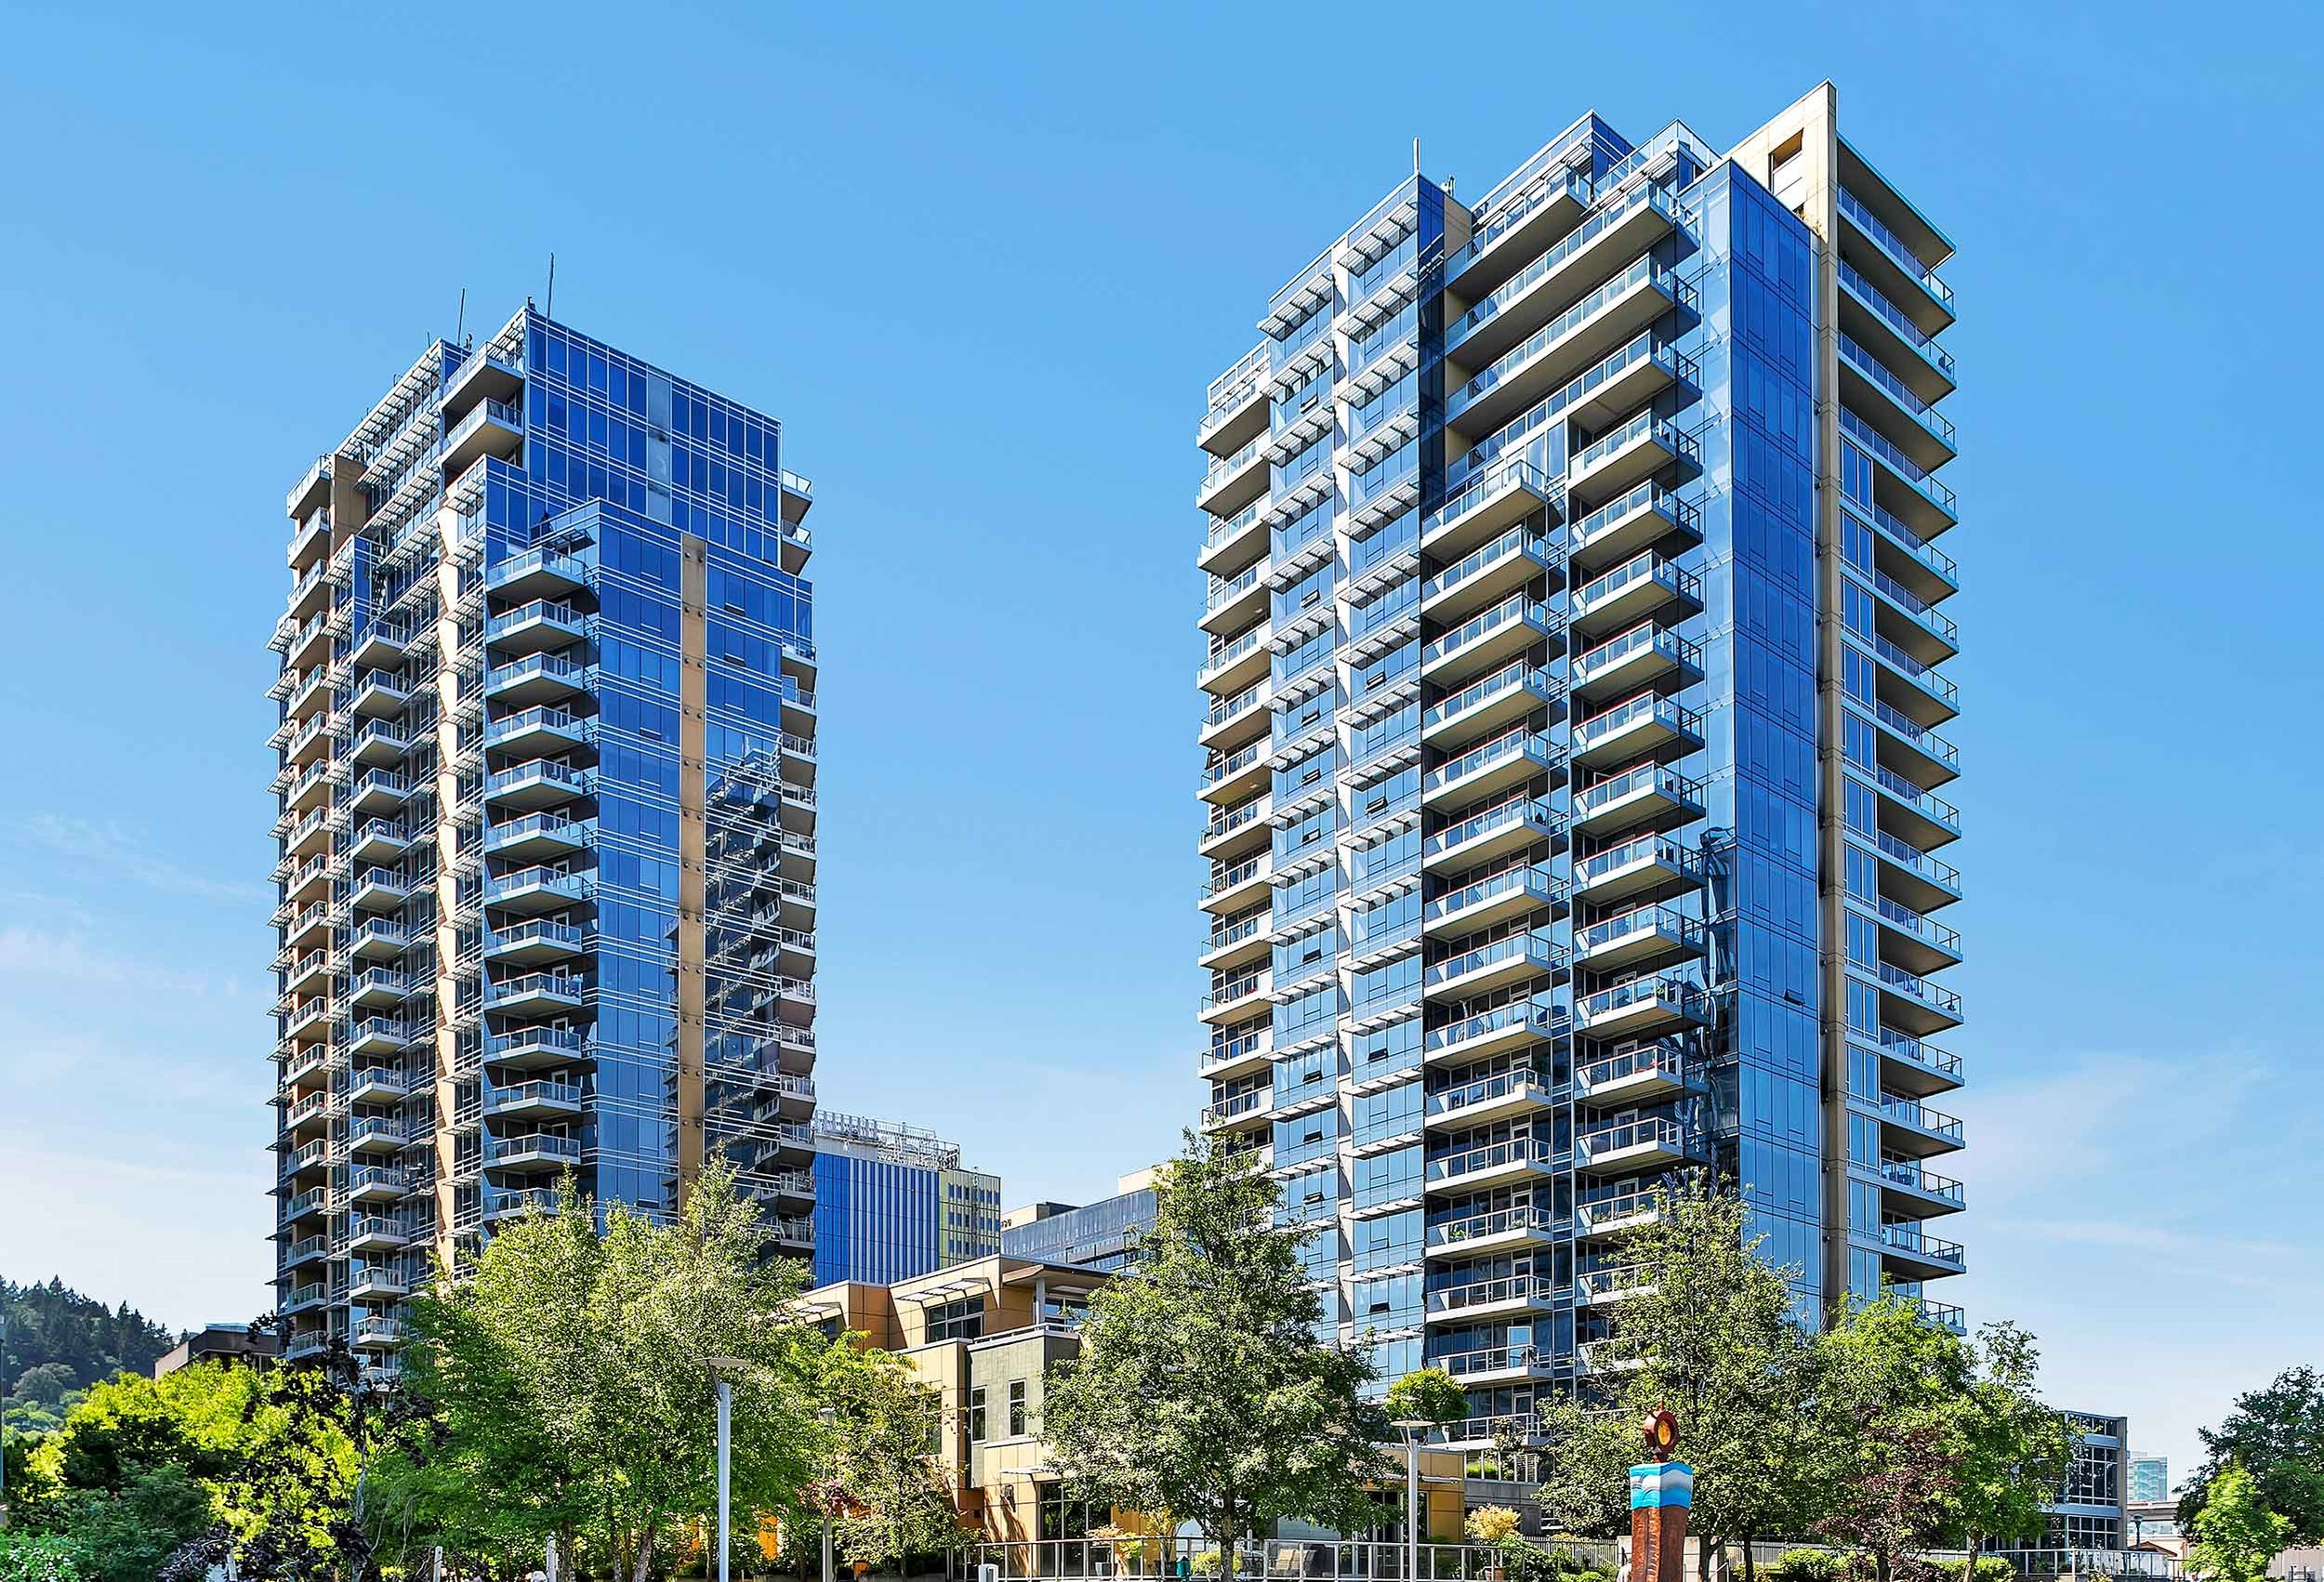 Meriwether's two slim glass towers were inspired by the point tower architecture of Vancouver, British Columbia